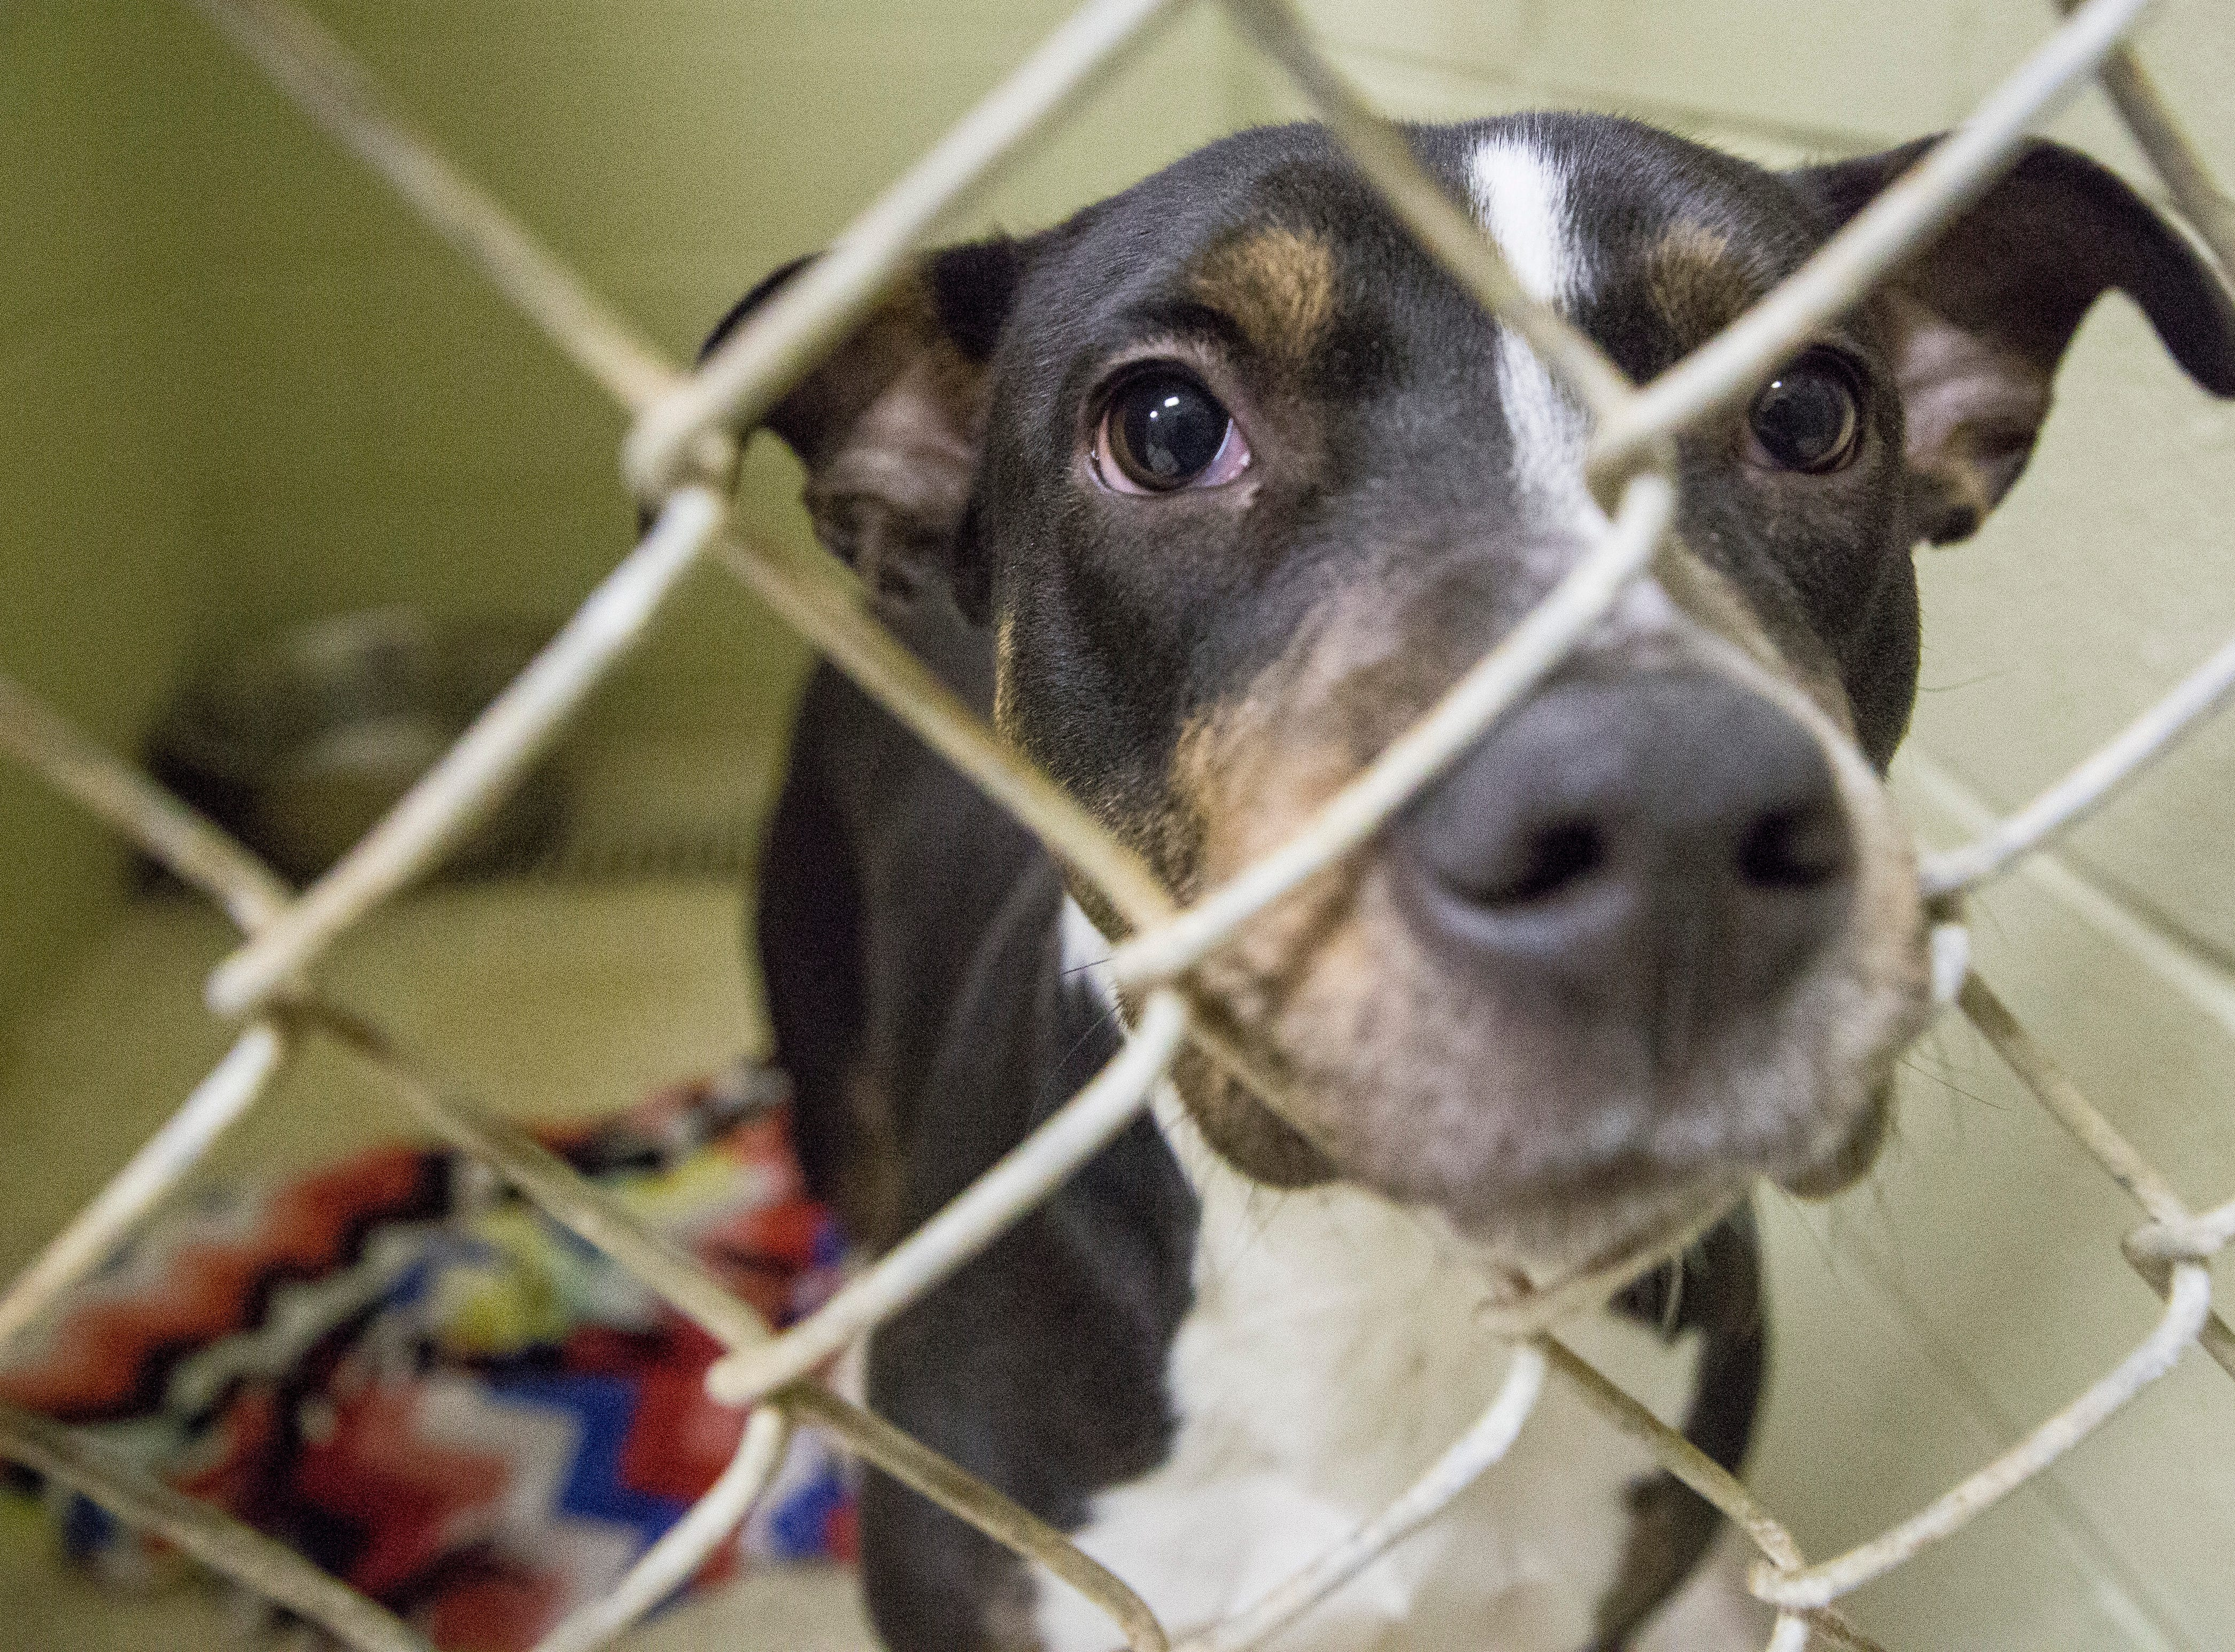 Dogs wait to be adopted on the adoption floor of the Muncie Animal Shelter Tuesday afternoon. The shelter will have a 24 hour adoption event starting Friday at midnight where all dogs will be $5 to adopt, while all cats and kittens will be $1 to adopt.